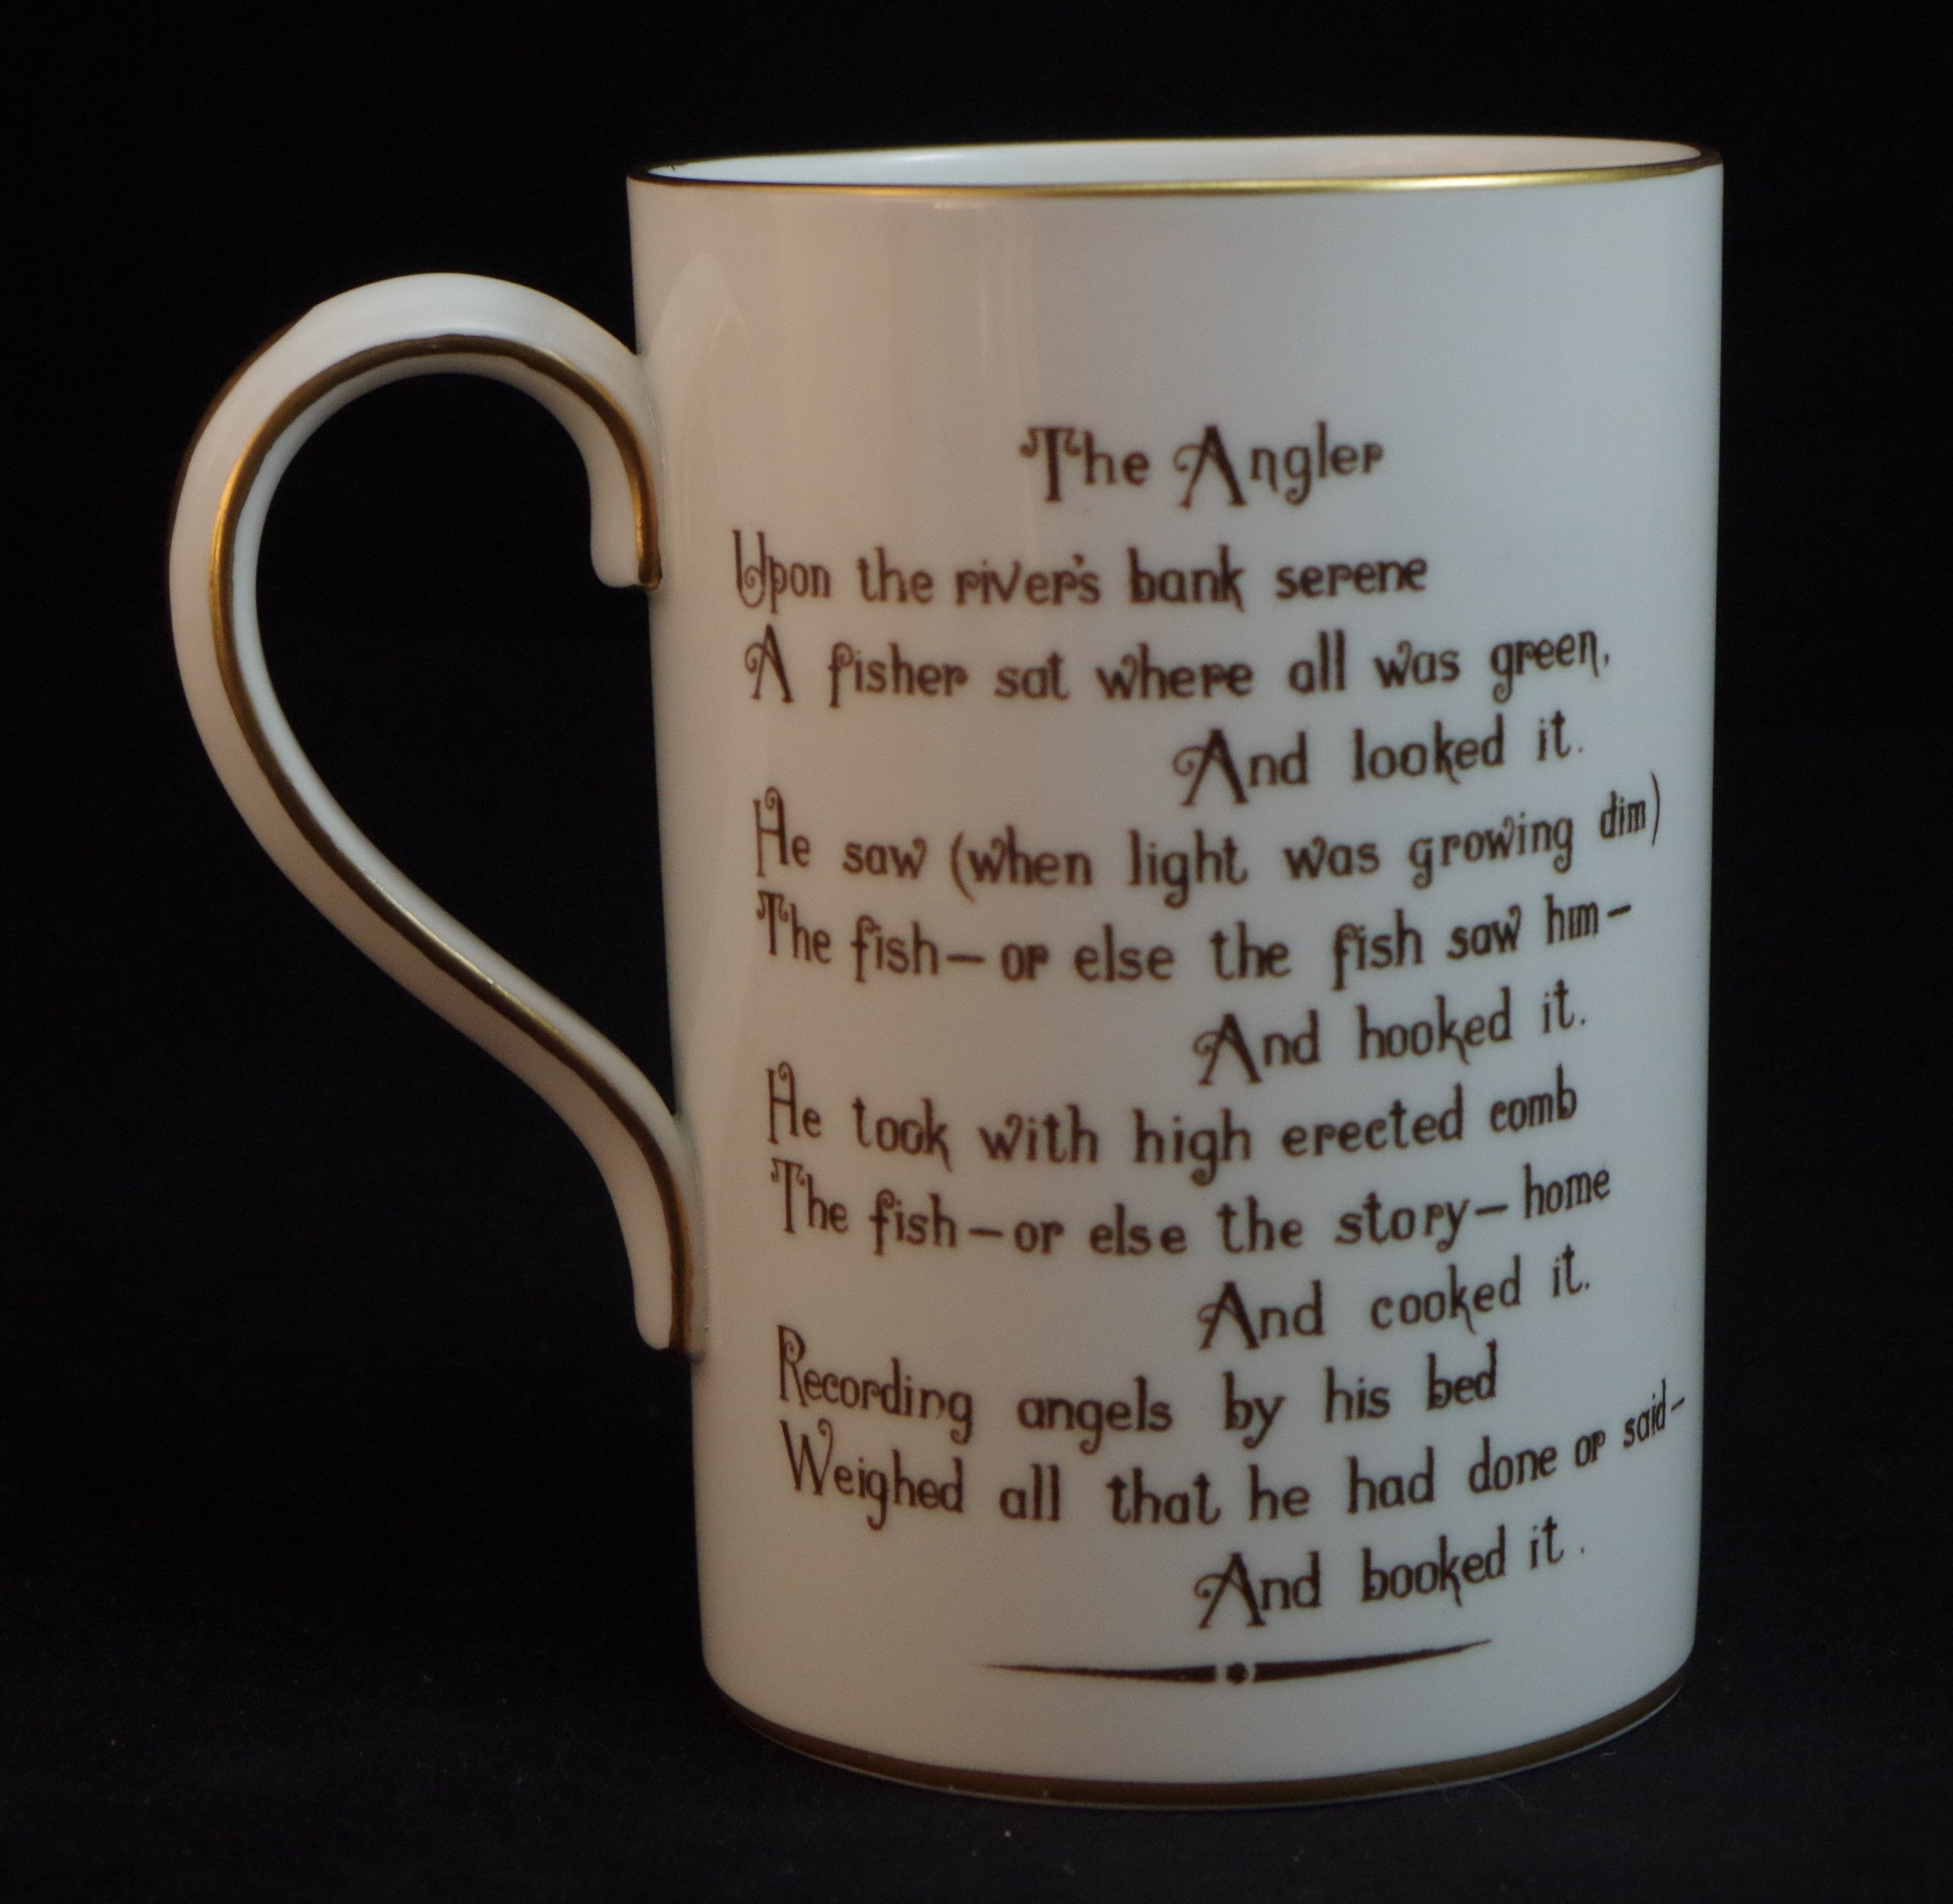 royal-crown-derby-tankard-1928-shape-the-angler-reverse